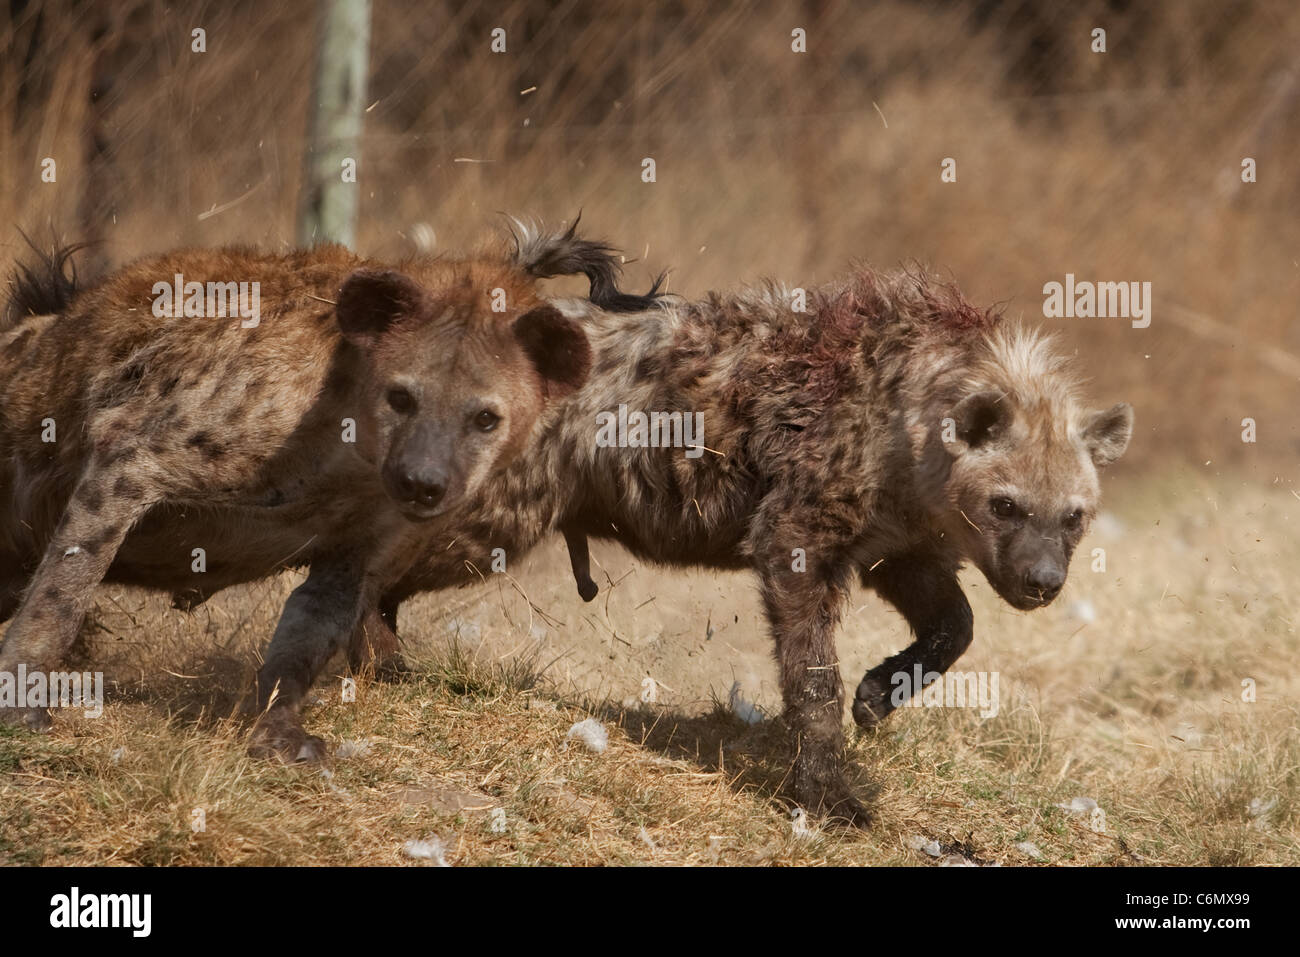 Hyenas in aggressive stance during dominance fight - Stock Image